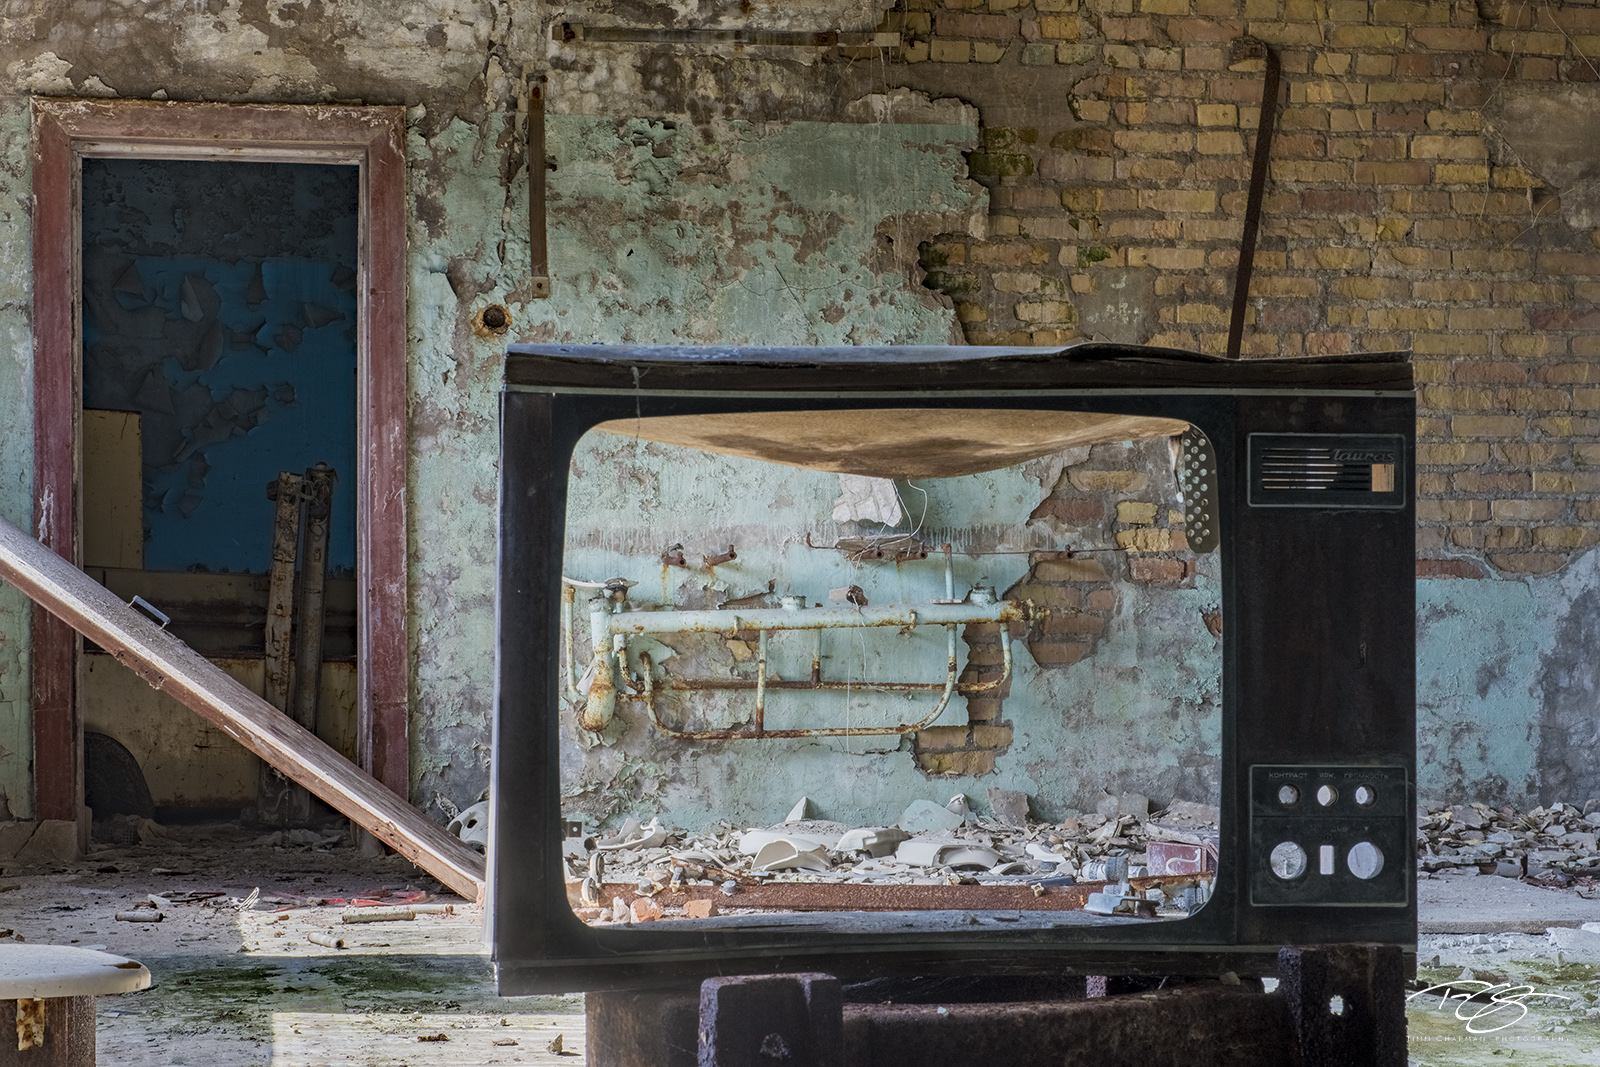 chernobyl, chornobyl, pripyat, exclusion zone, abandoned, forgotten, wasteland, radioactive, decay, peeling paint, moss, reclamation, dusty, rust, television, tv, spooky, brick, door, tube, 57 Channel, photo